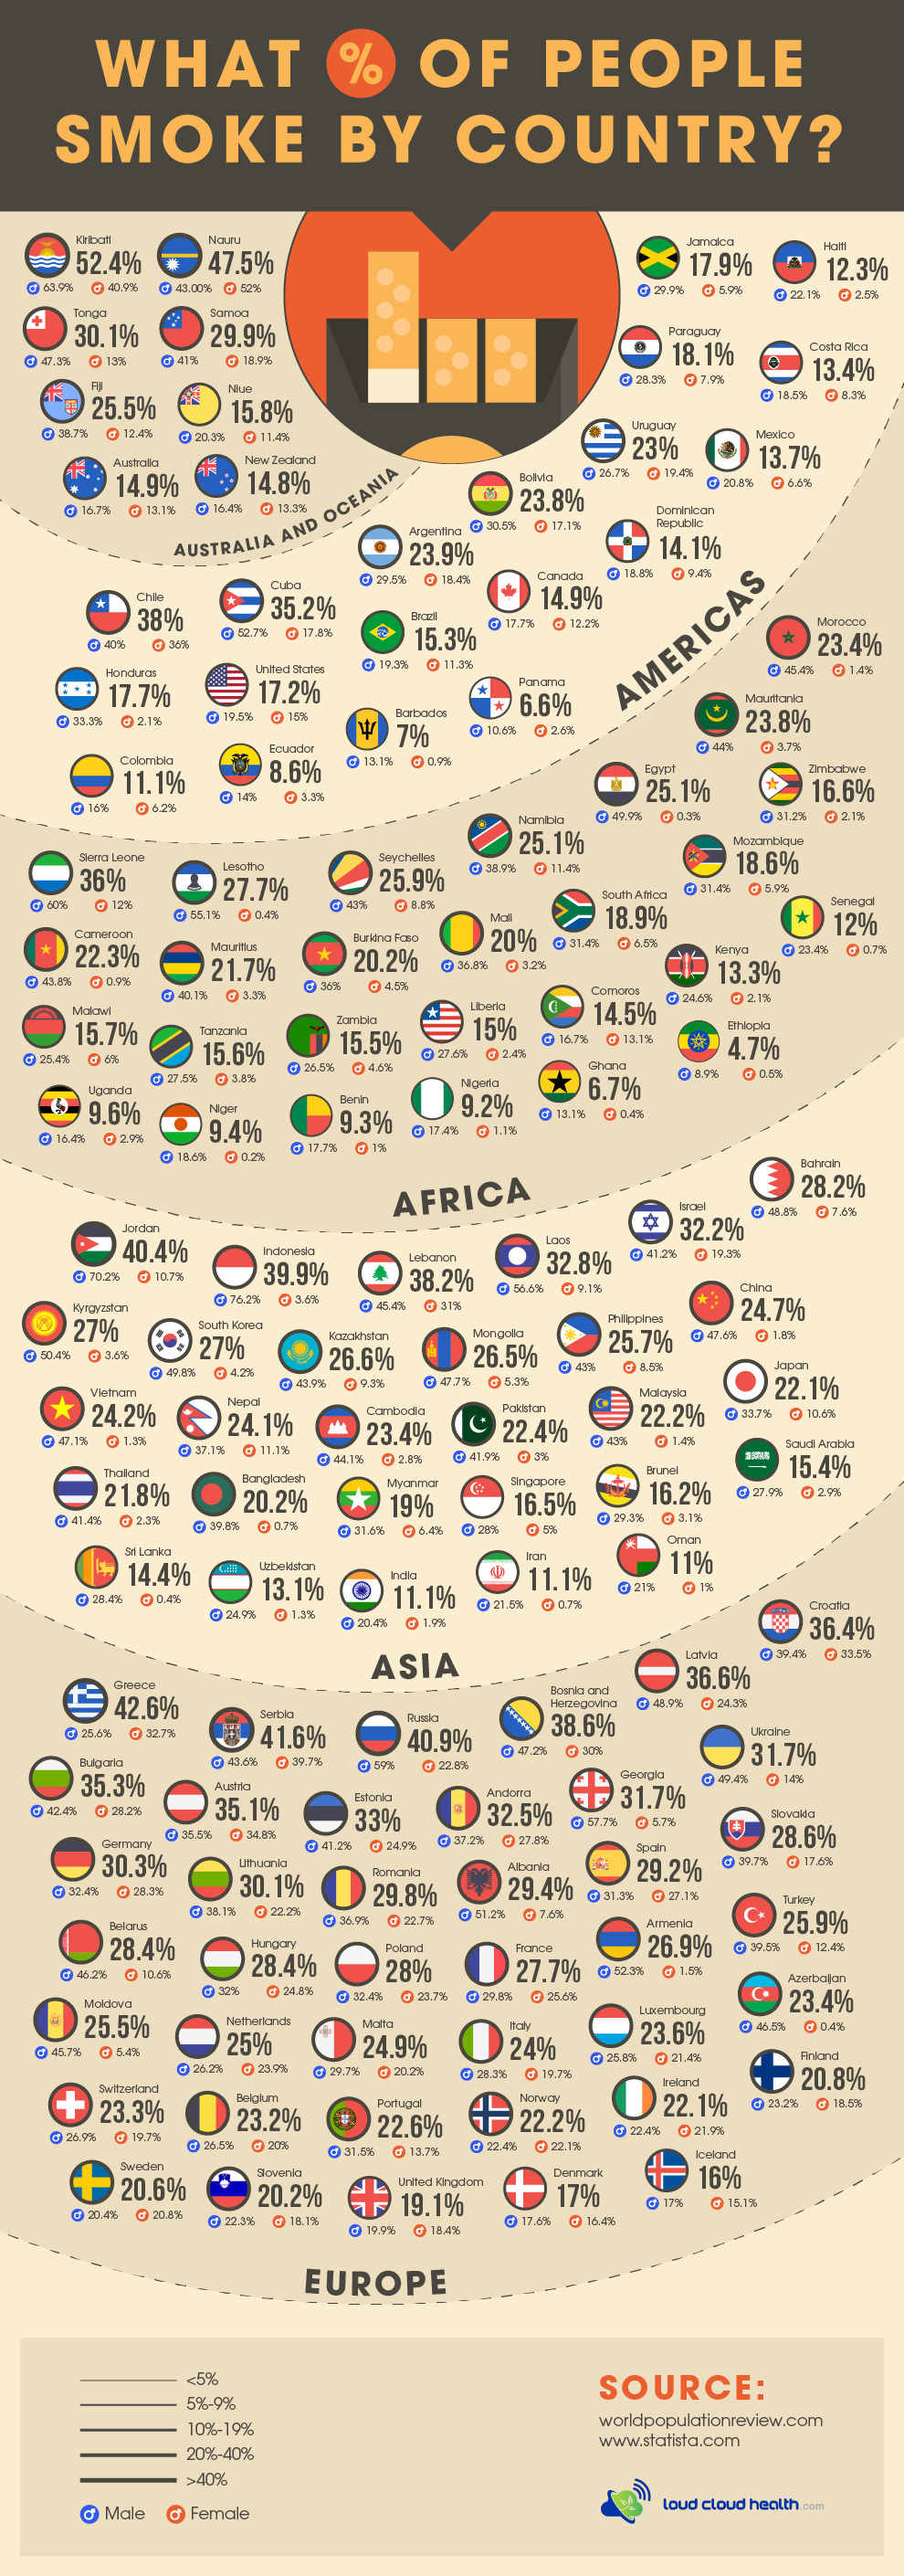 How Many People Smoke Cigarettes in 2020 #infographic #Smoking #infographics #Smoke Cigarettes